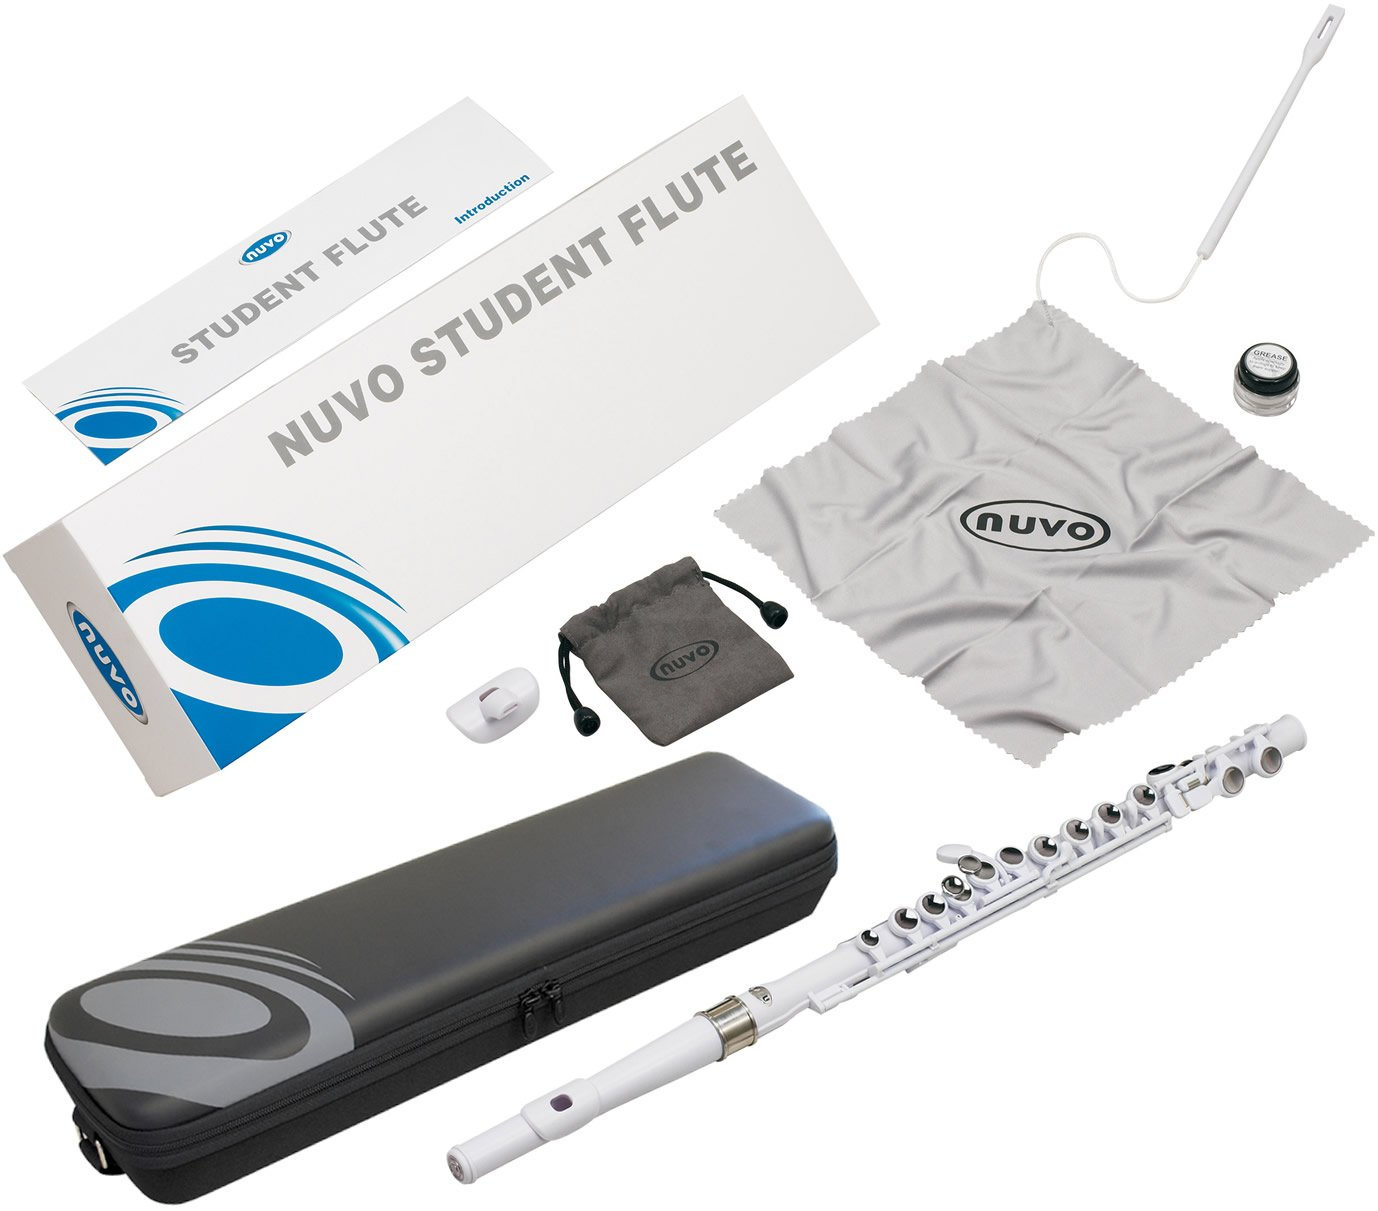 national NUVO Nouveau plastic flute STUDENT FLUTE white From JPN by Nuvo (Image #3)